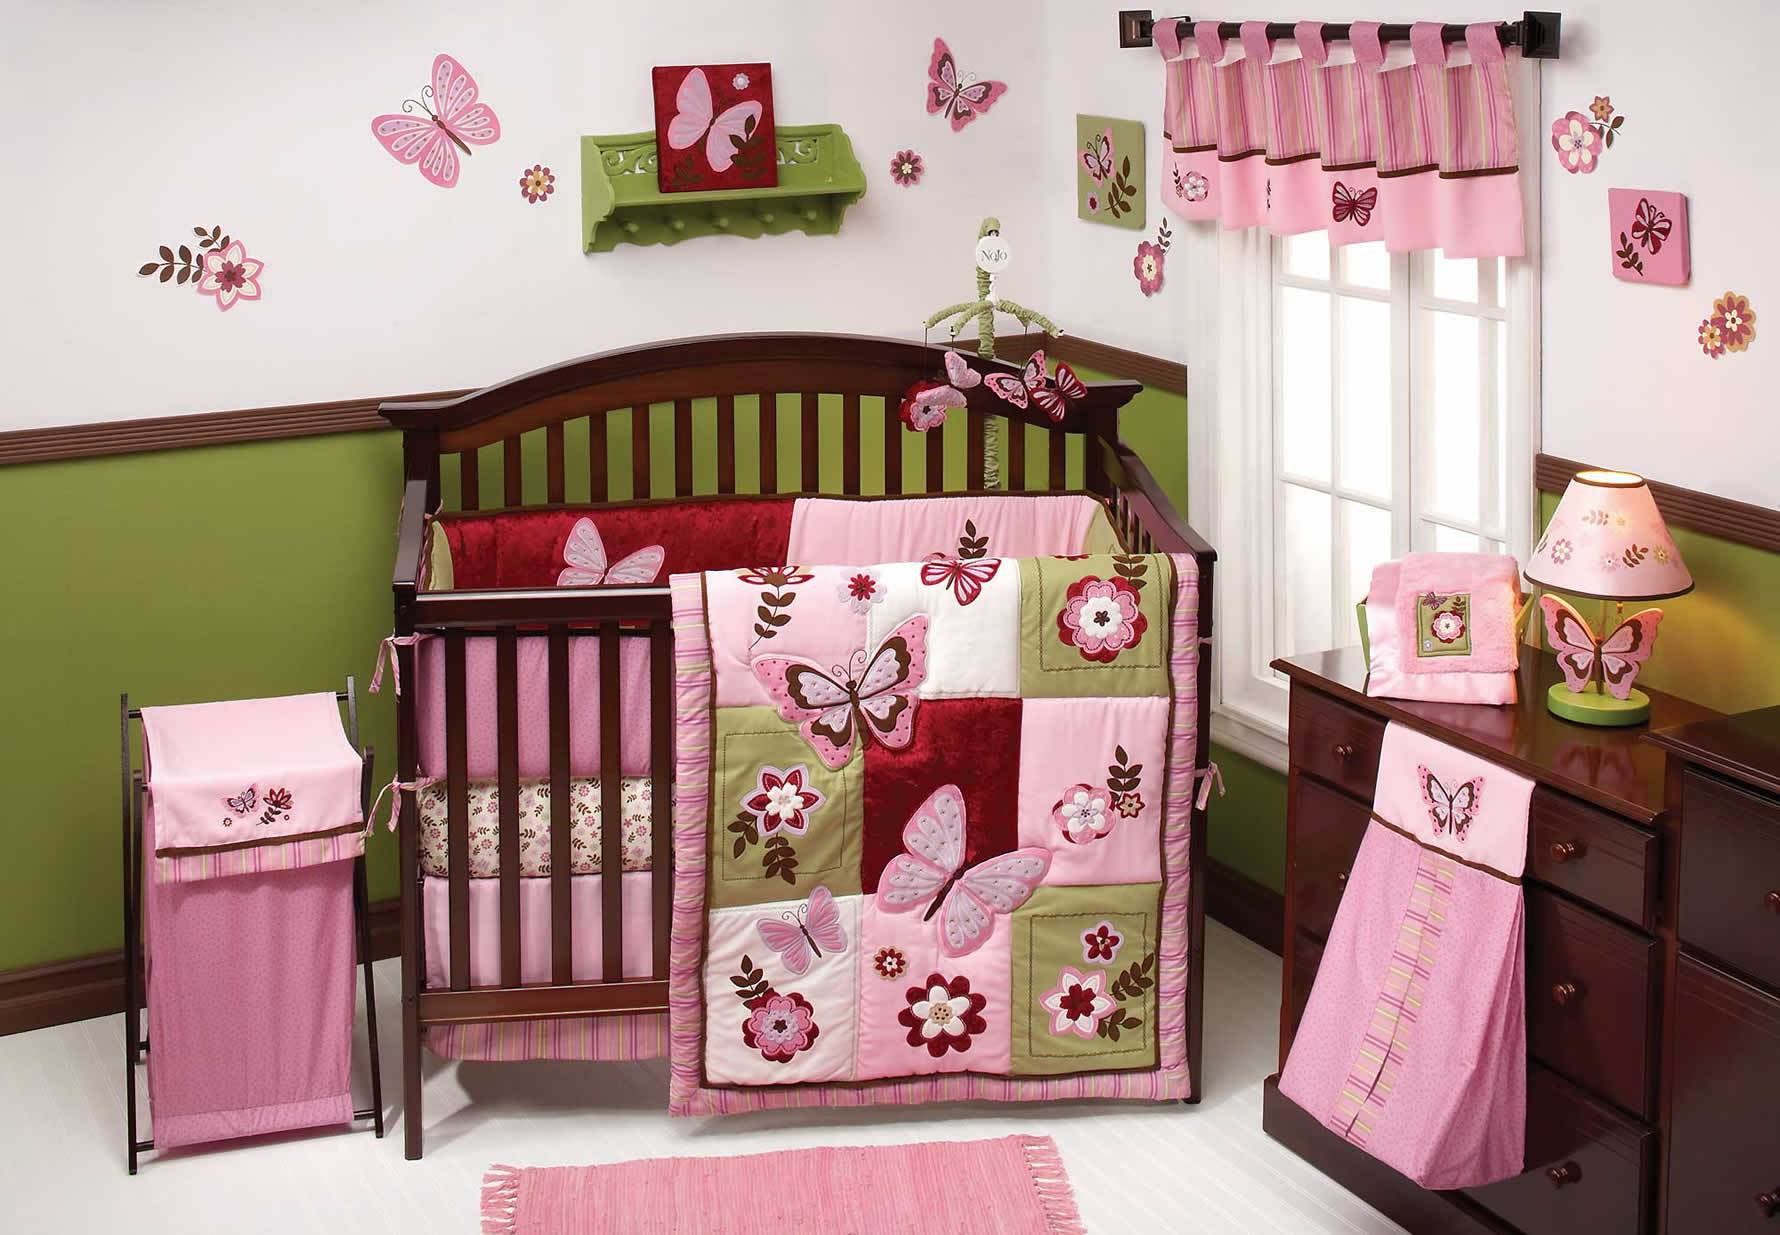 baby a lovekidszone for the crib westwood is suit best and meant size on be your to may design any convertible finish cribs contempary tuscan nursery assortment waverly intended in designed